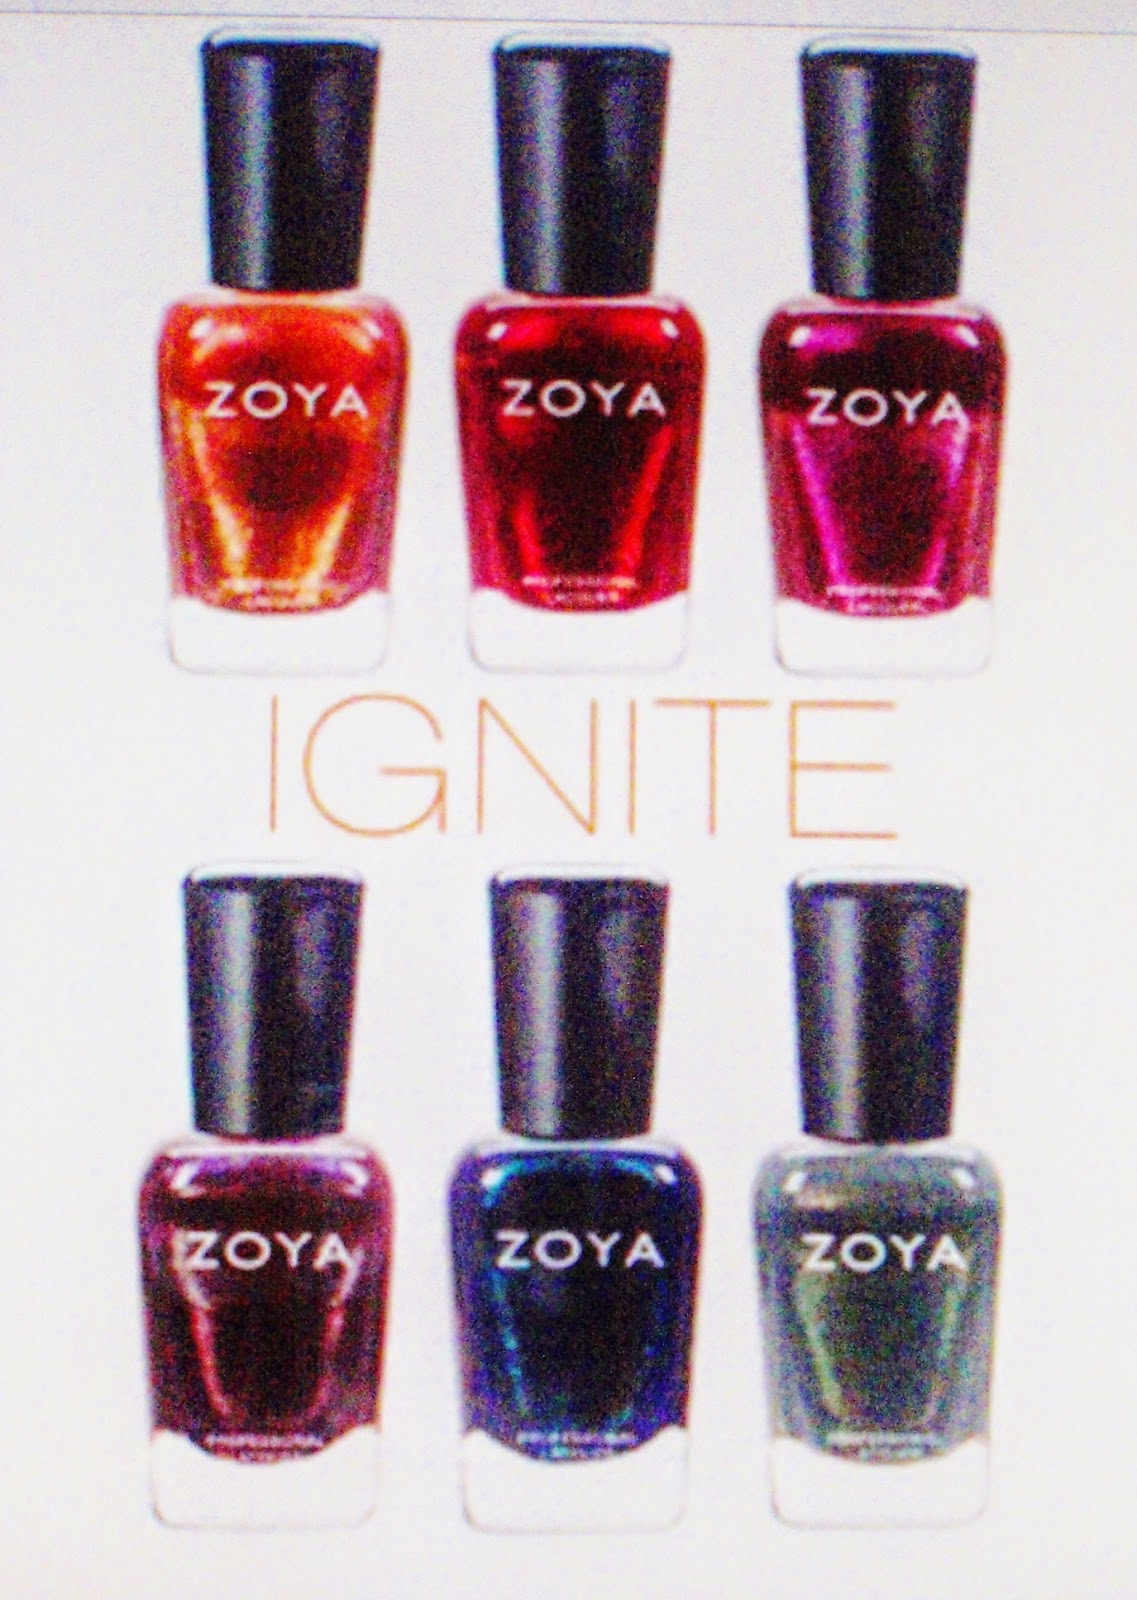 zoya ignite